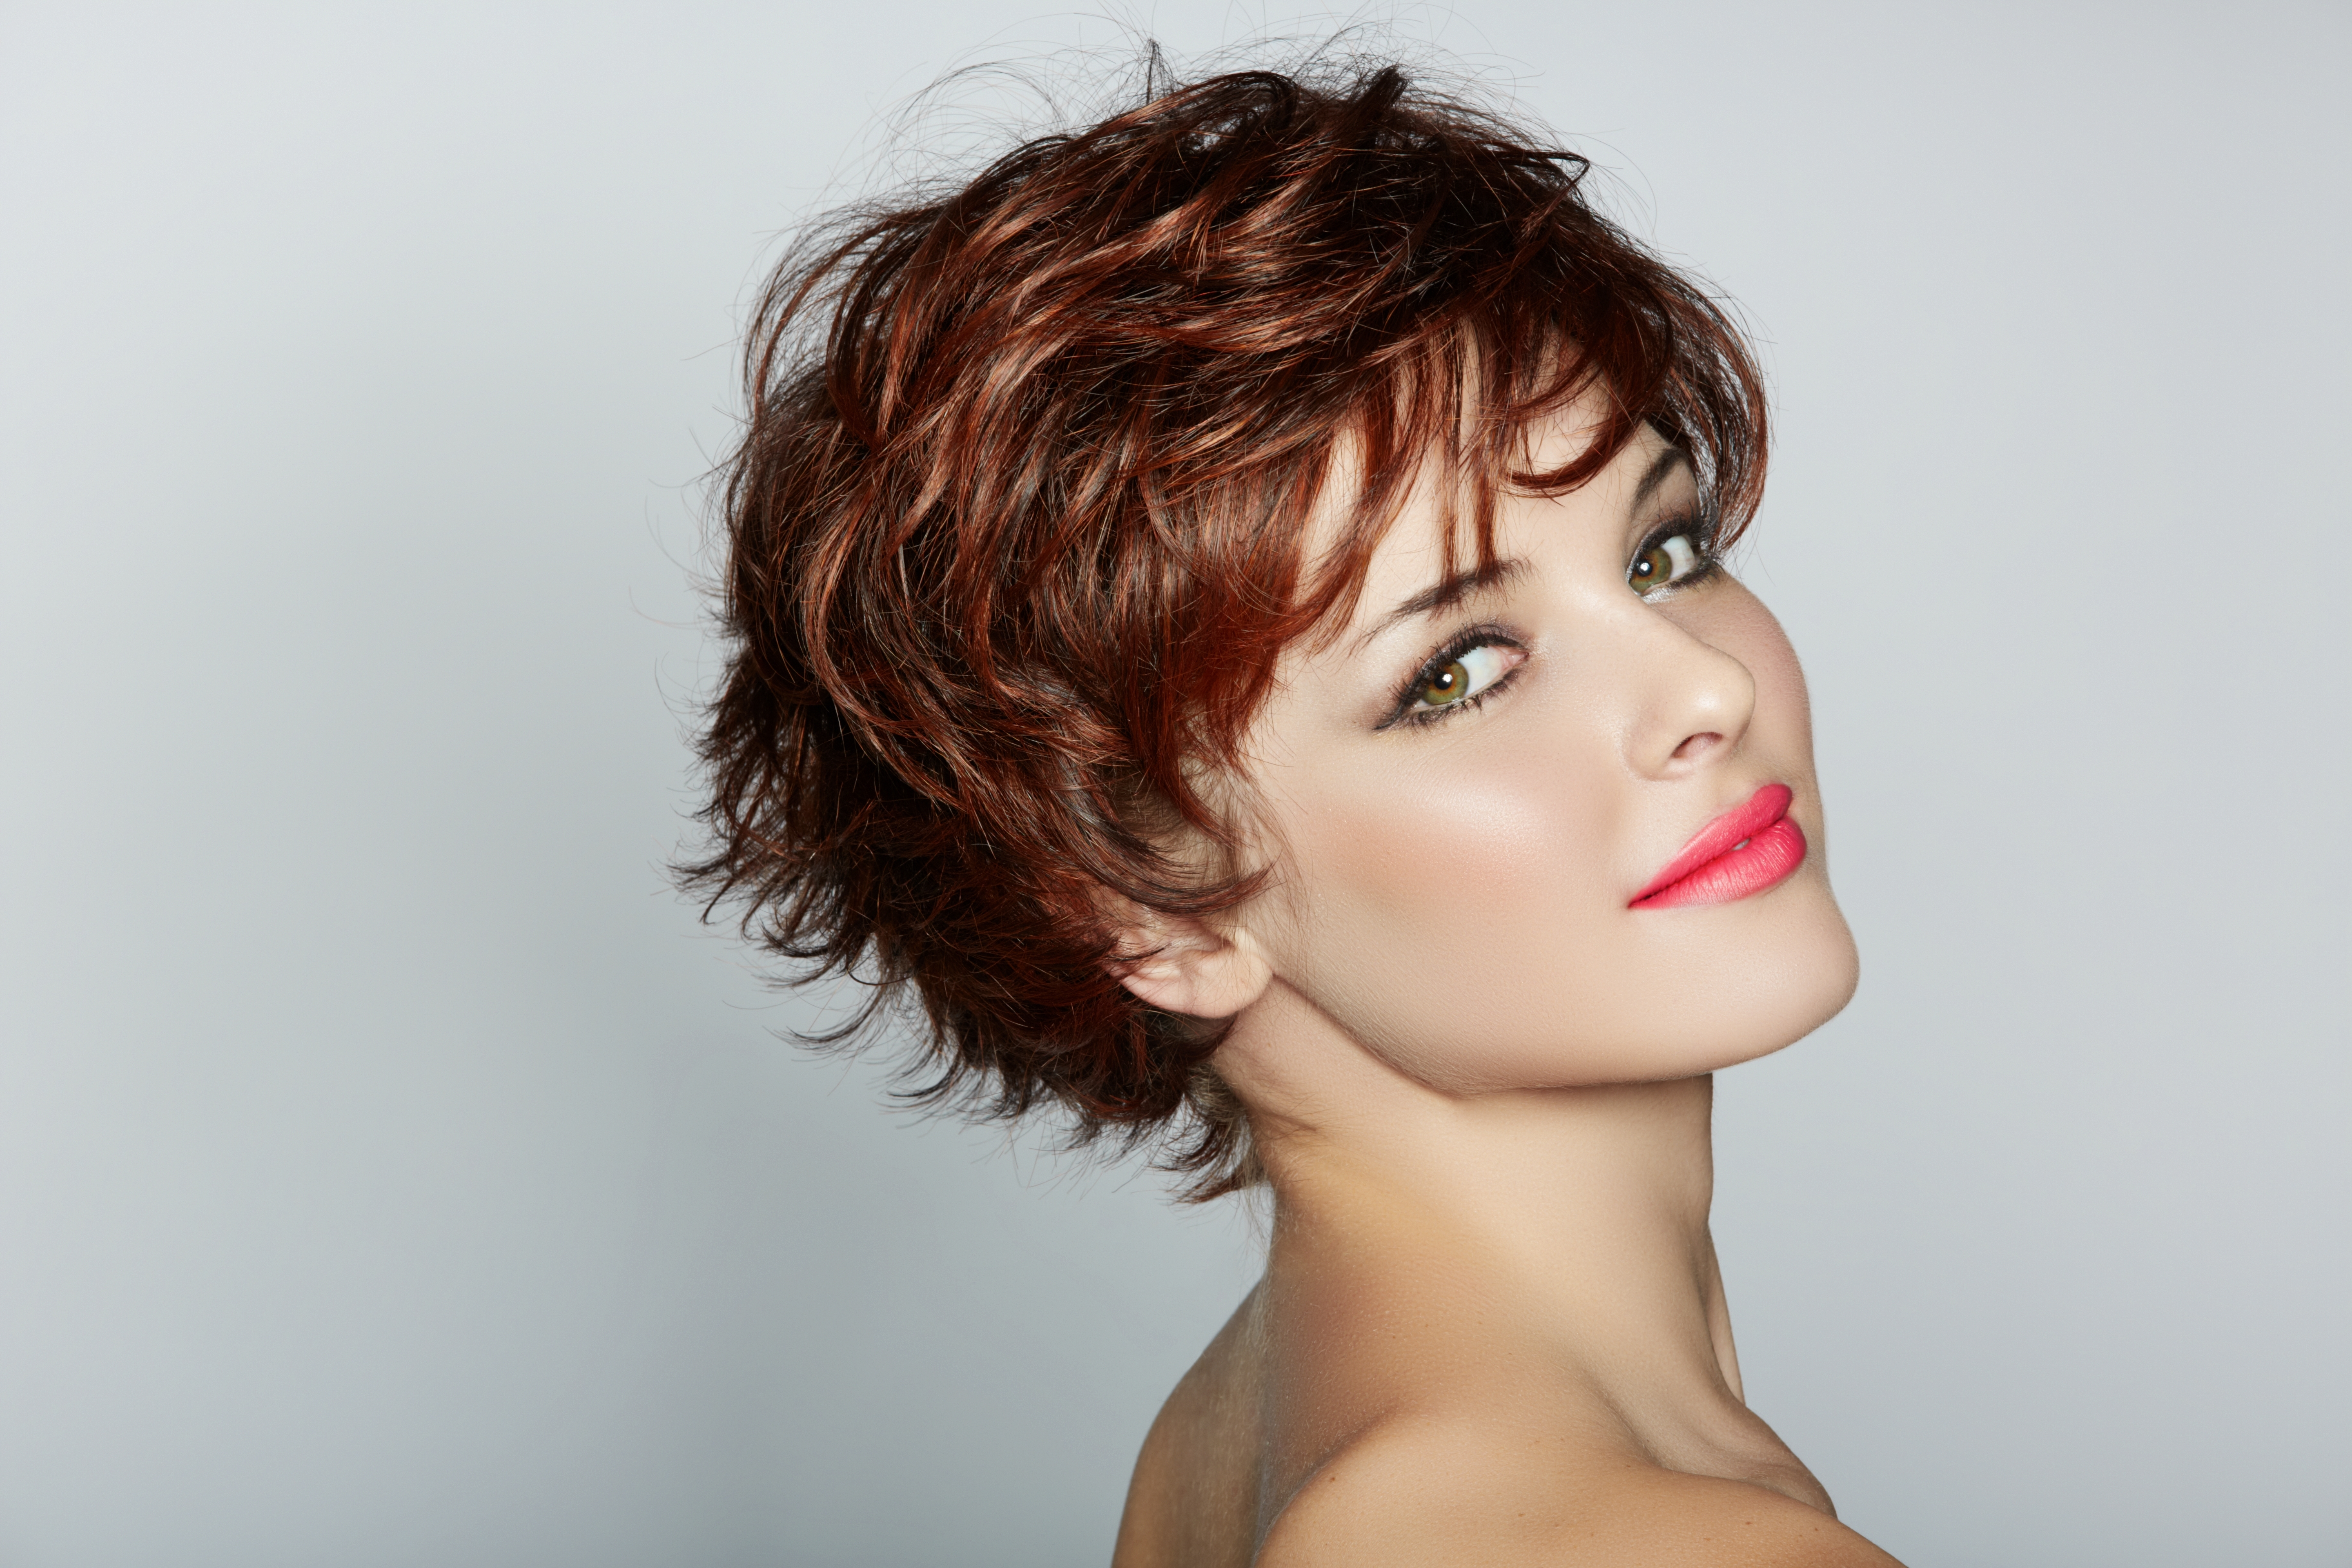 28 New Thoughts About Haircuts For Thin Curly Hair That Will Turn Pertaining To Short Haircuts For Thin Curly Hair (View 4 of 25)